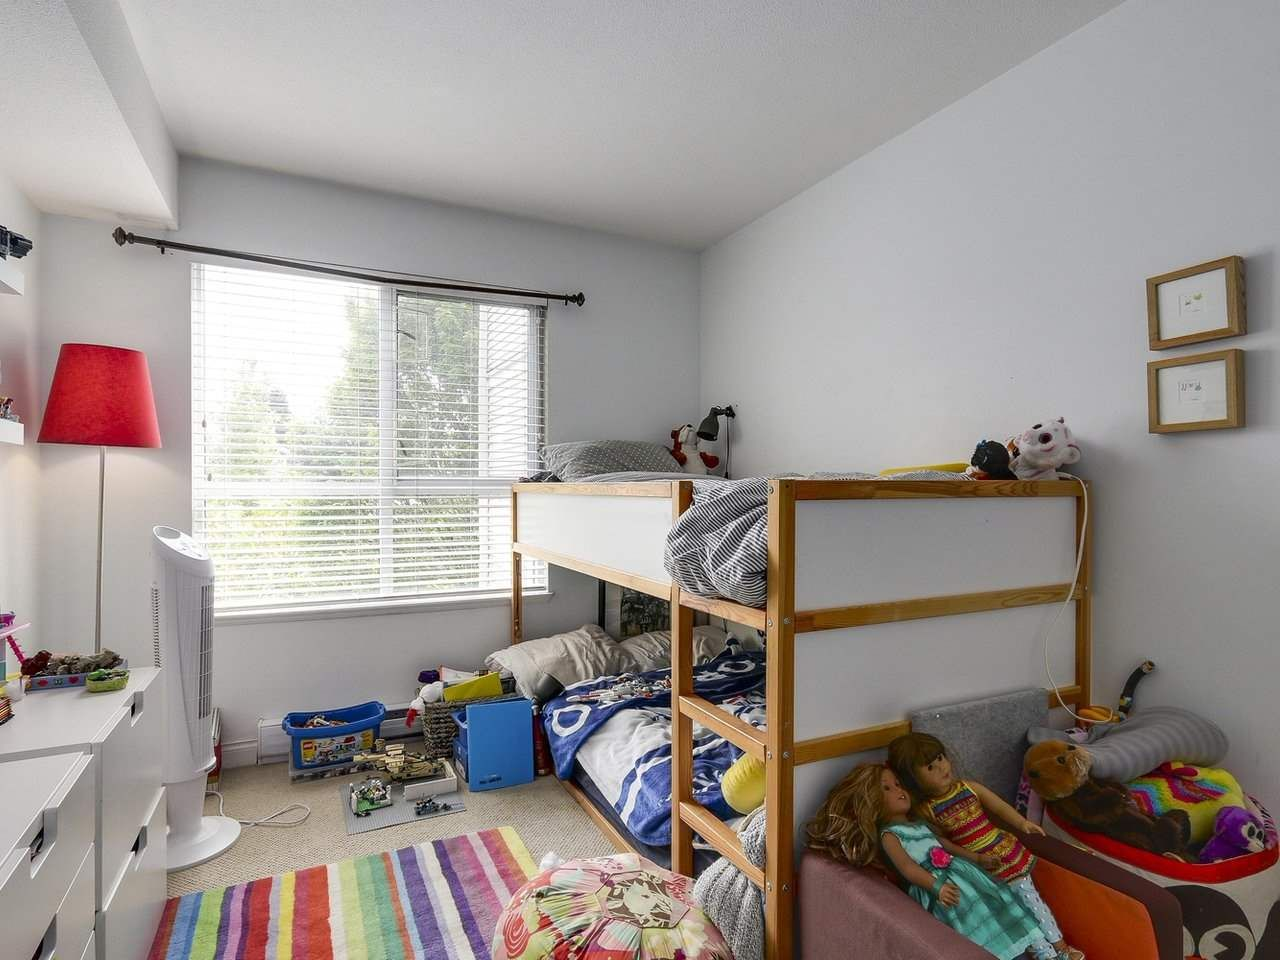 Photo 10: Photos: 305 225 E 19TH AVENUE in Vancouver: Main Condo for sale (Vancouver East)  : MLS®# R2173702